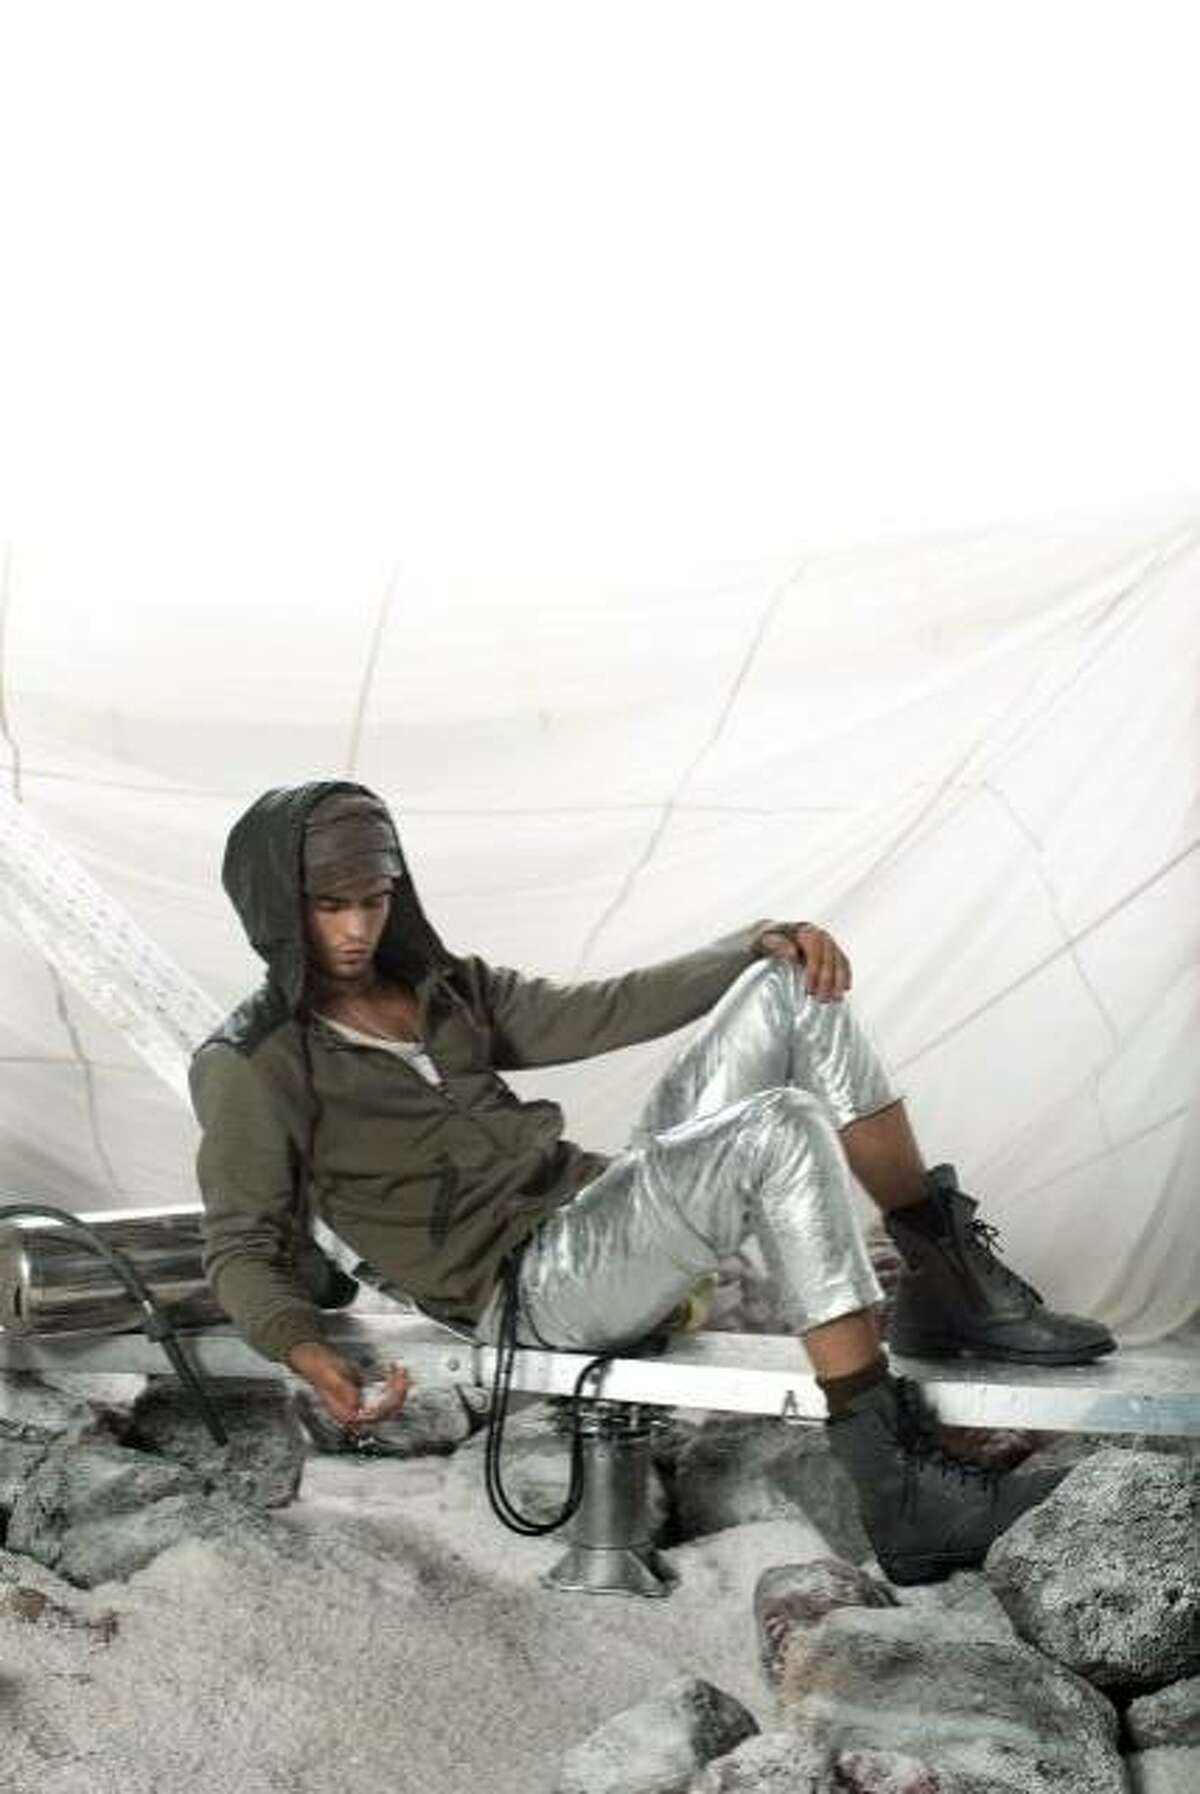 A spring/summer 2011 look by San Francisco line NICE Collective.